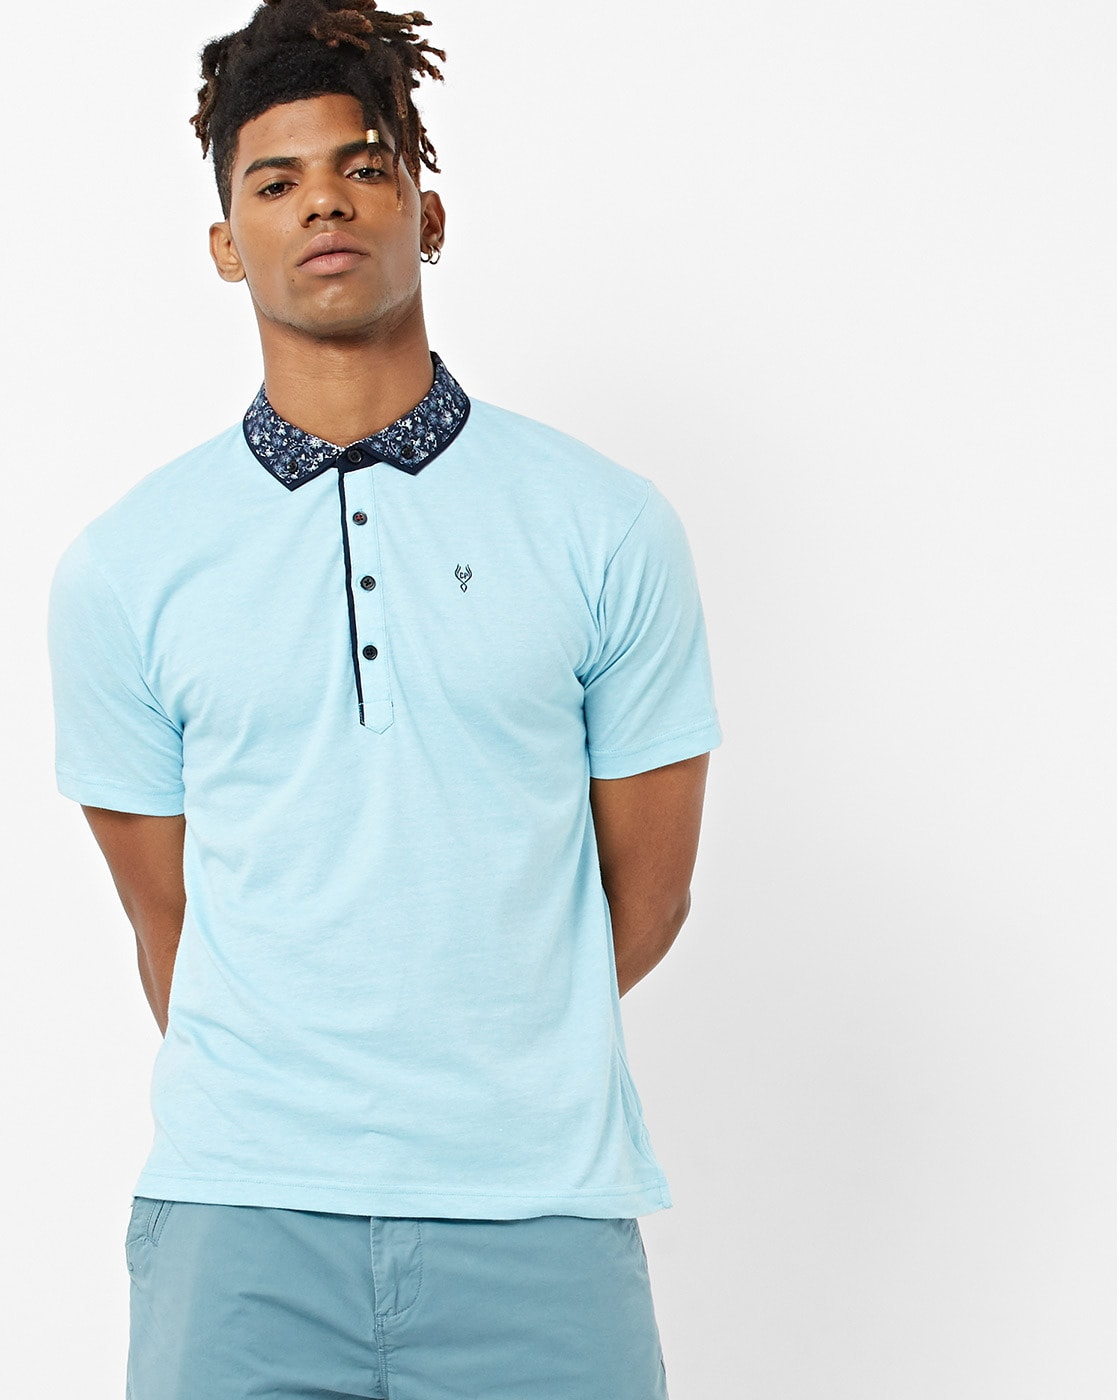 be8ac1c37 CLASSIC POLO. Slim Fit Polo T-shirt with Button-Down Collar